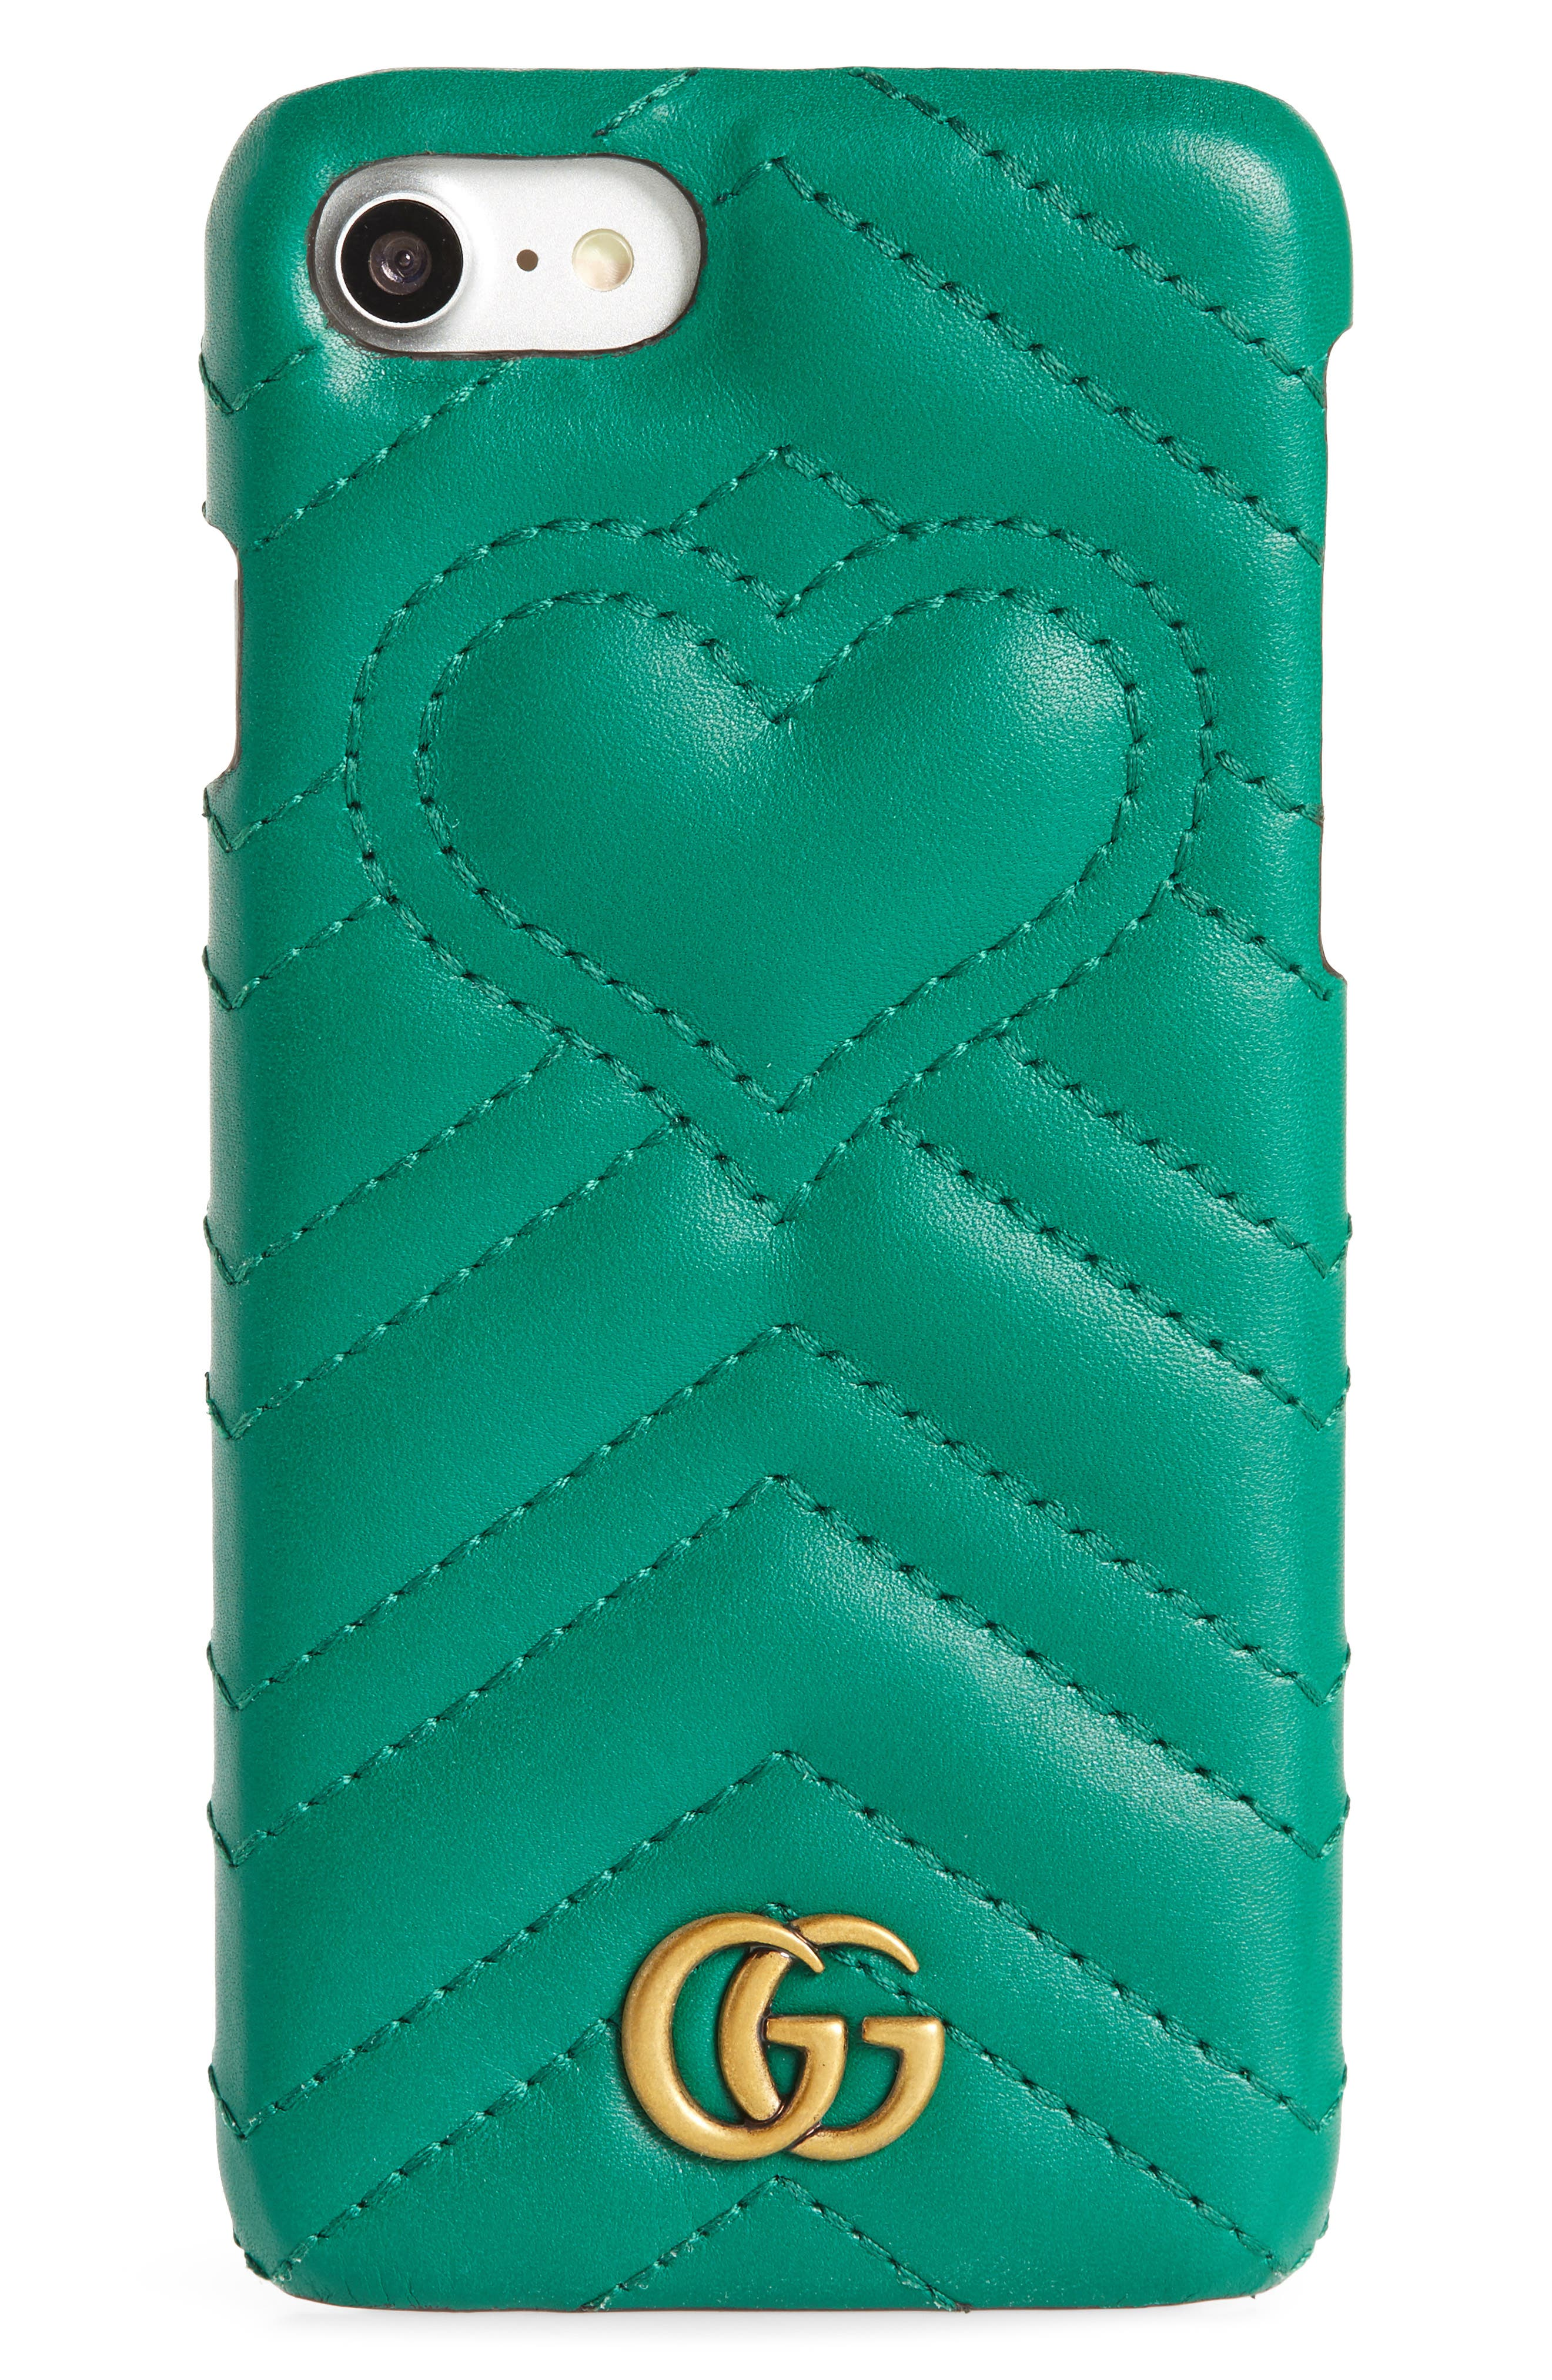 GUCCI, GG Marmont Leather iPhone 7 Case, Main thumbnail 1, color, EMERALD